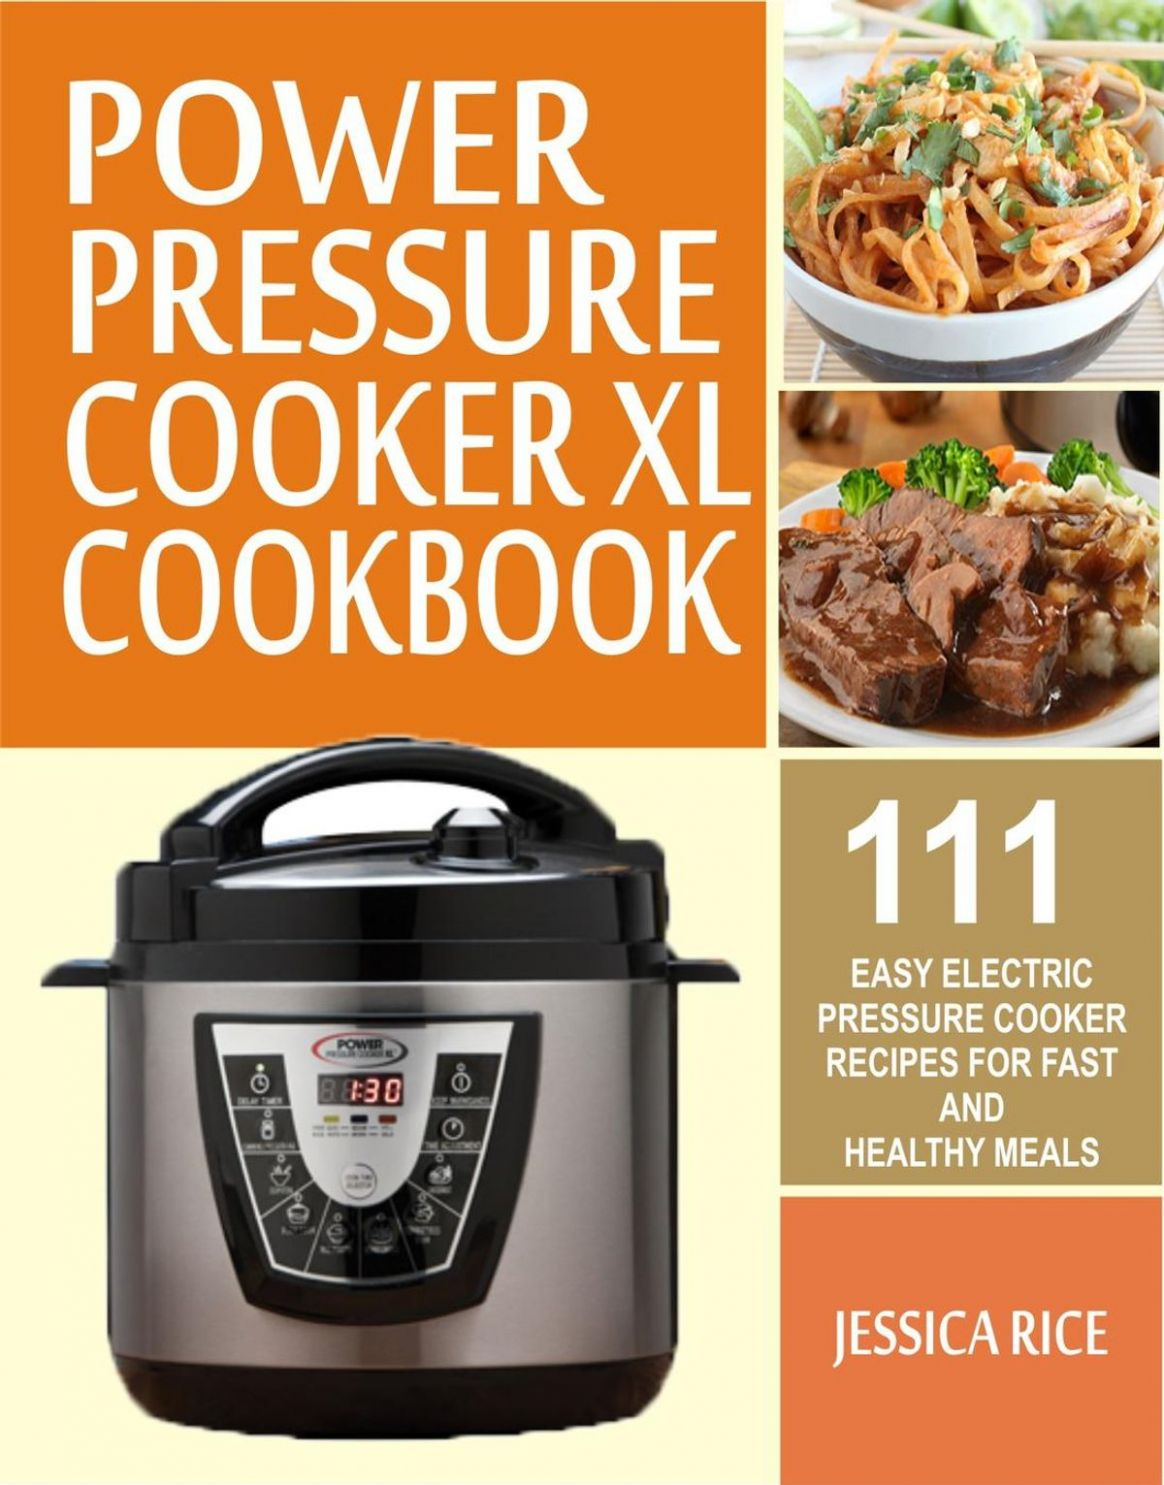 Power Pressure Cooker XL Cookbook: 10 Easy Electric Pressure Cooker  Recipes For Fast And Healthy Meals ebook by Jessica Rice - Rakuten Kobo - Recipes Cooking Xl